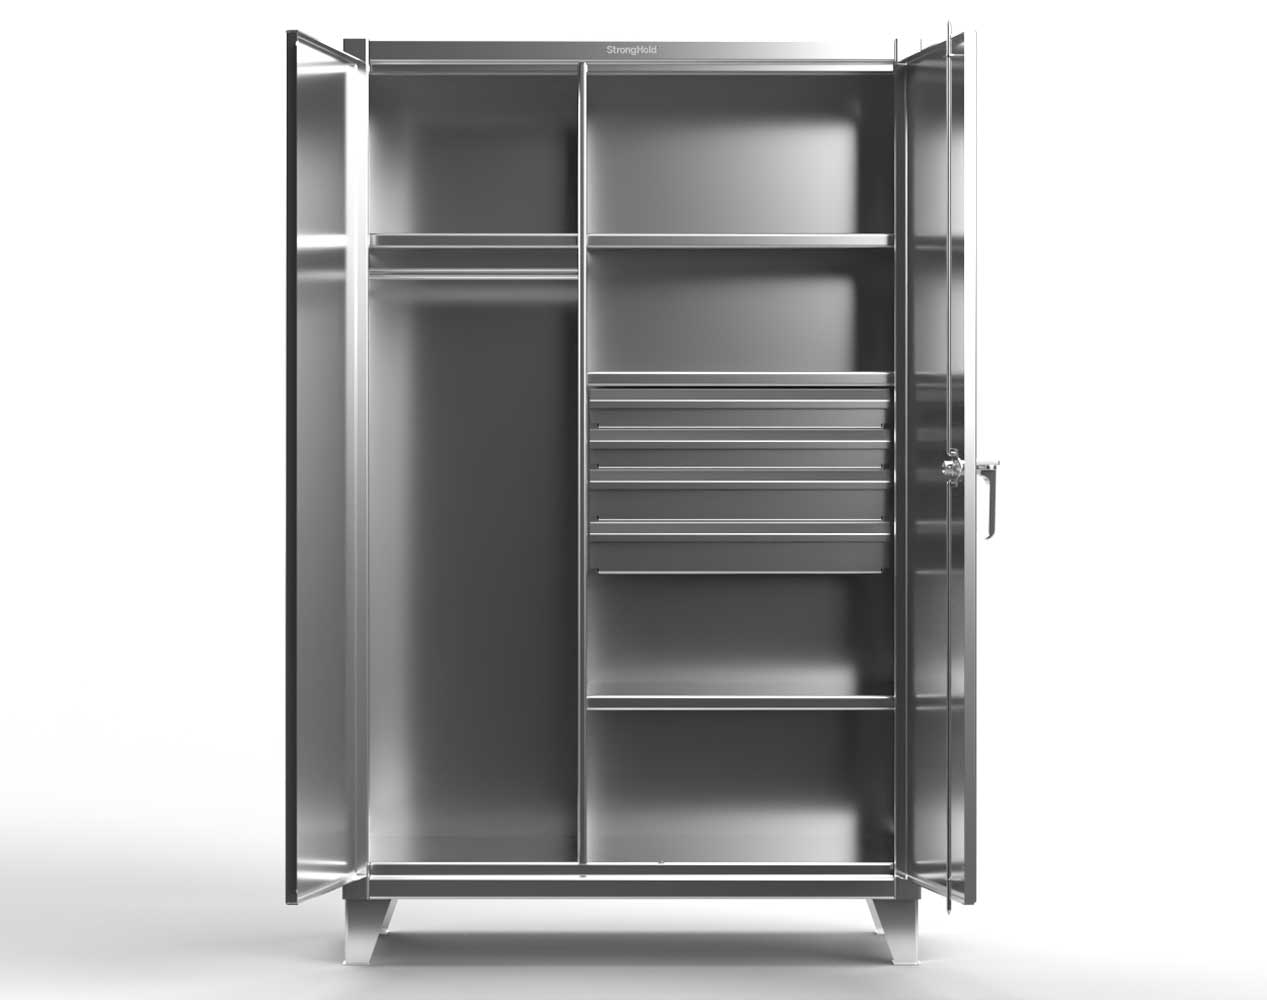 Extra Heavy Duty 12 GA Stainless Steel Wardrobe Cabinet with 4 Drawers, 4 Shelves – 60 In. W x 24 In. D x 78 In. H